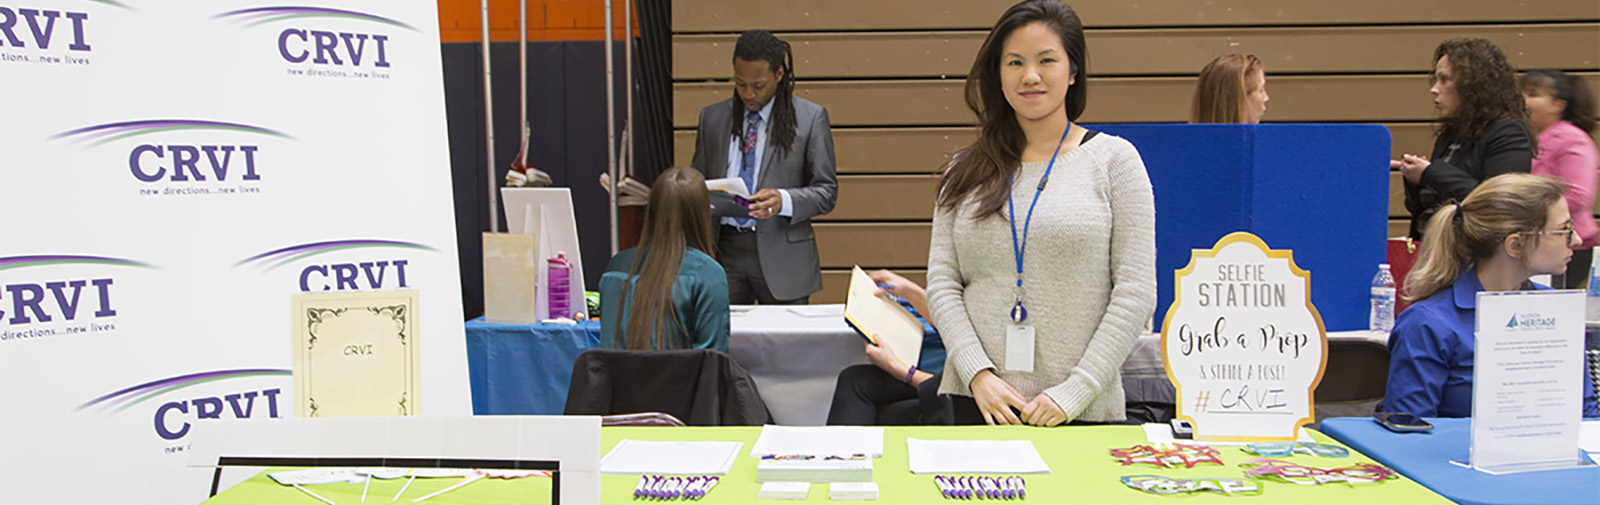 Job Fair Candid